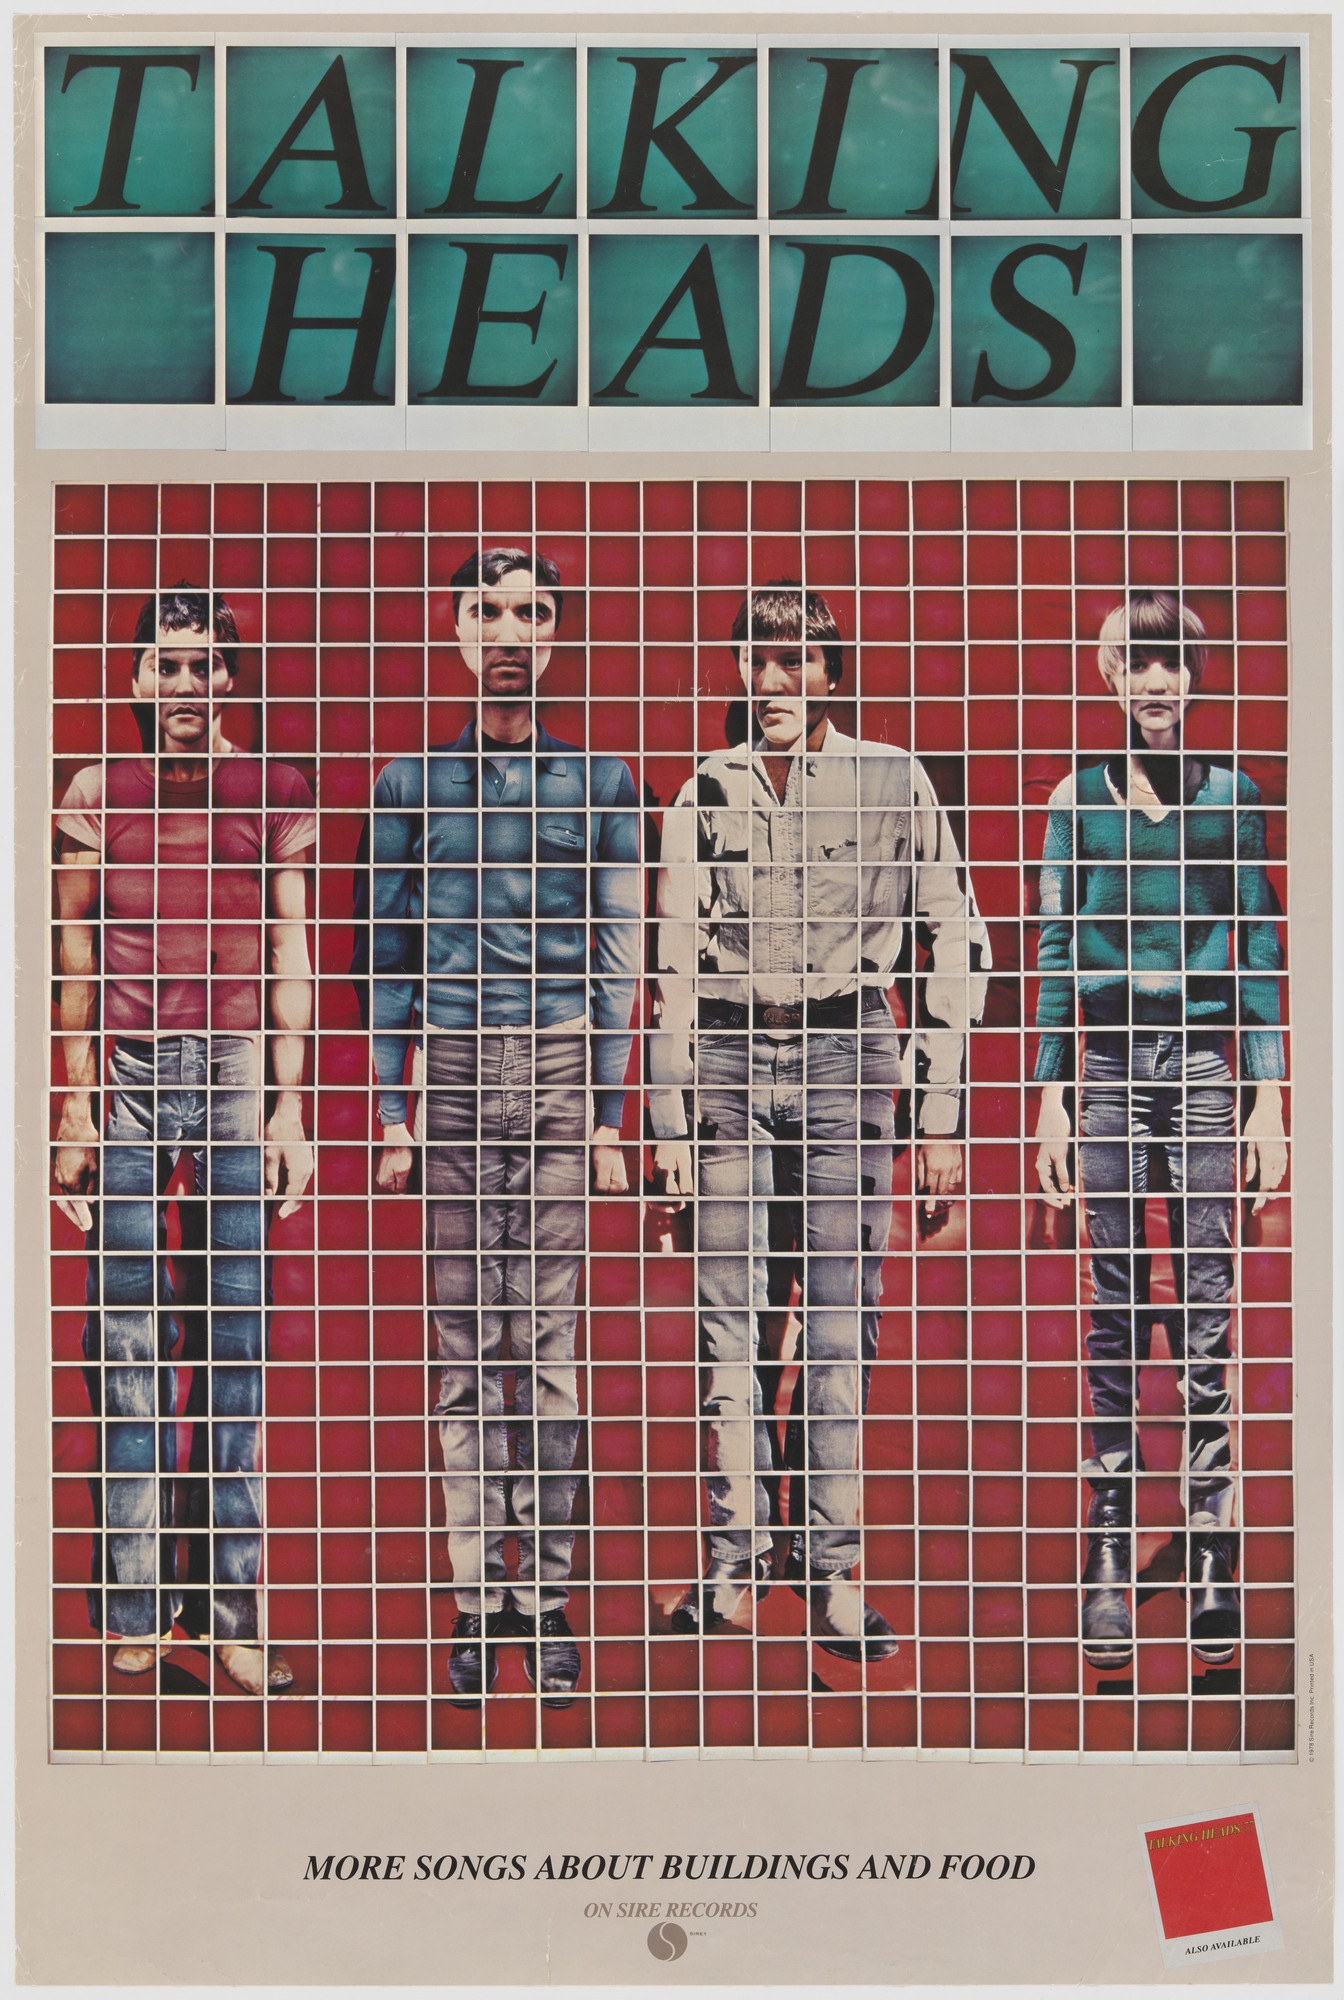 David Byrne, Jimmy DeSana. Talking Heads, More Songs About Buildings & Food. 1978